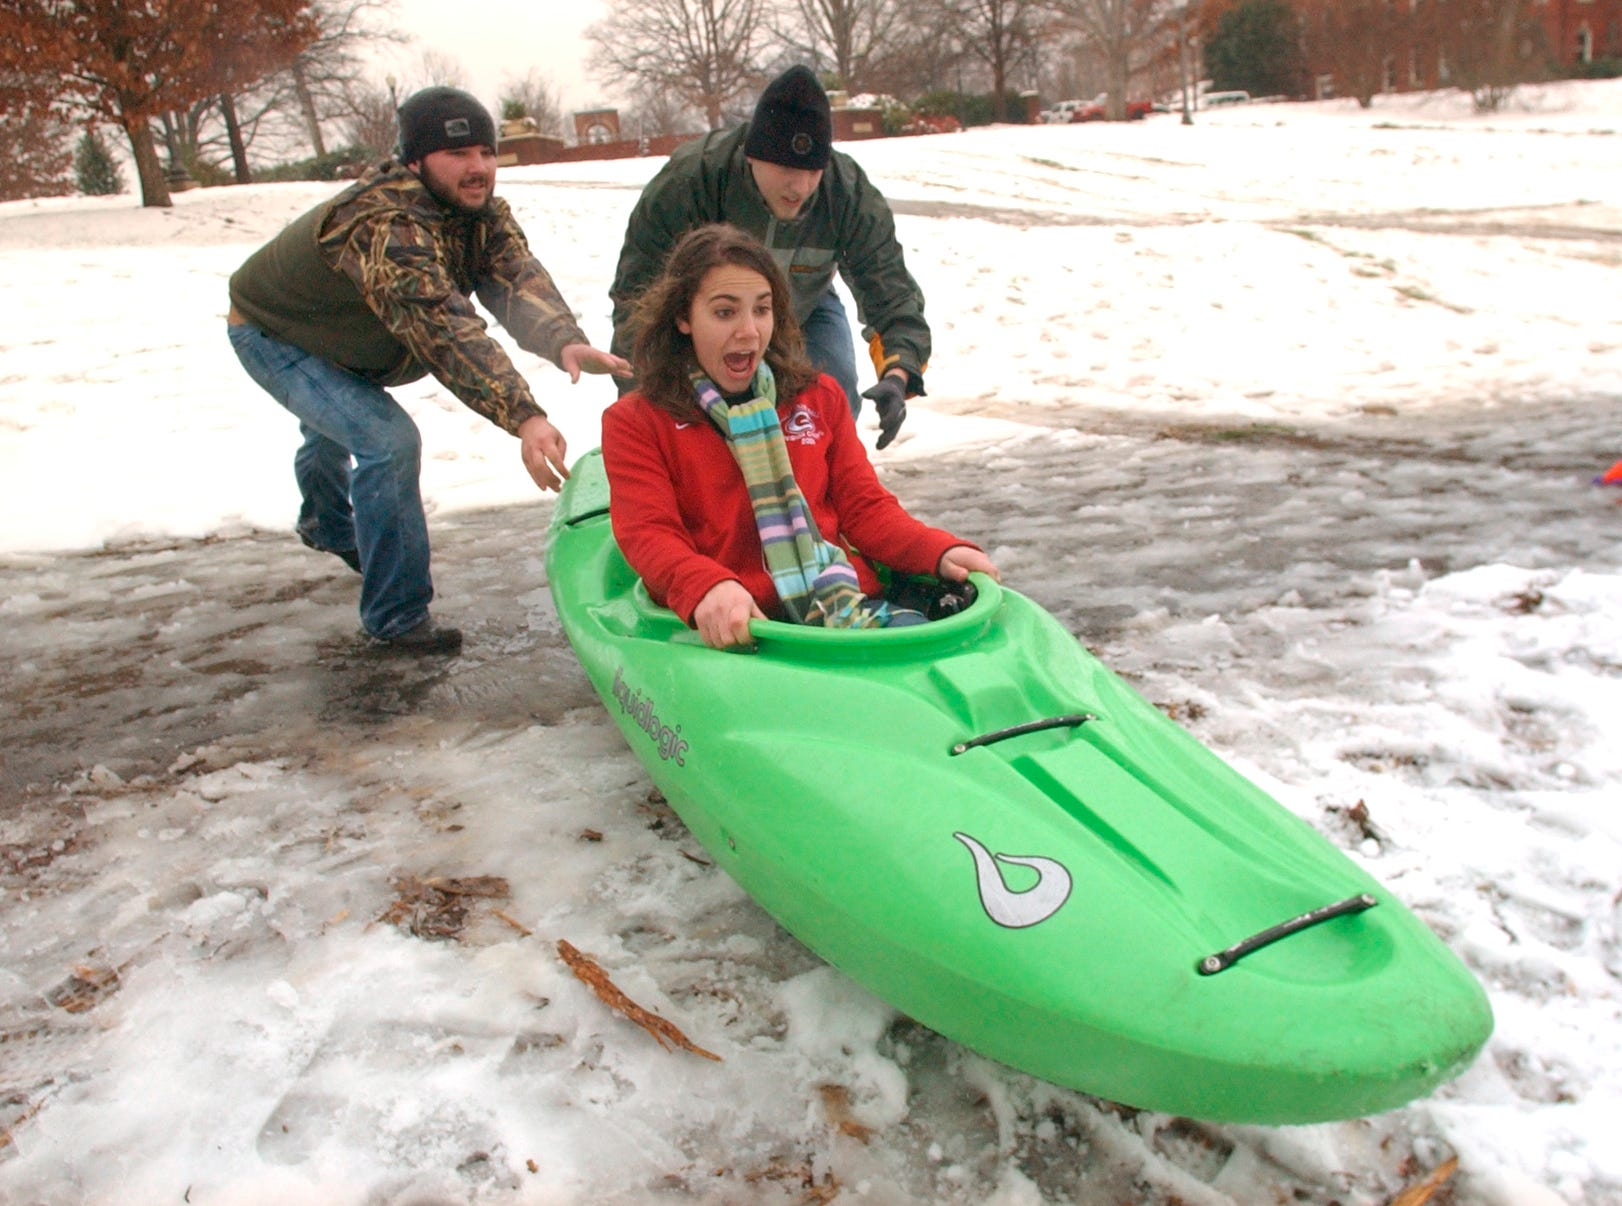 Clemson University freshman Lindsay Stewart, 18, middle, of Greenville, S.C. gets a push in a kayak from fellow freshmen Mason Sanders, left, 19, of Anderson, S.C., and Andy Jordan, right, 19, of Anderson, S.C. Thursday February 1, 2007 on a hill in Clemson, S.C.